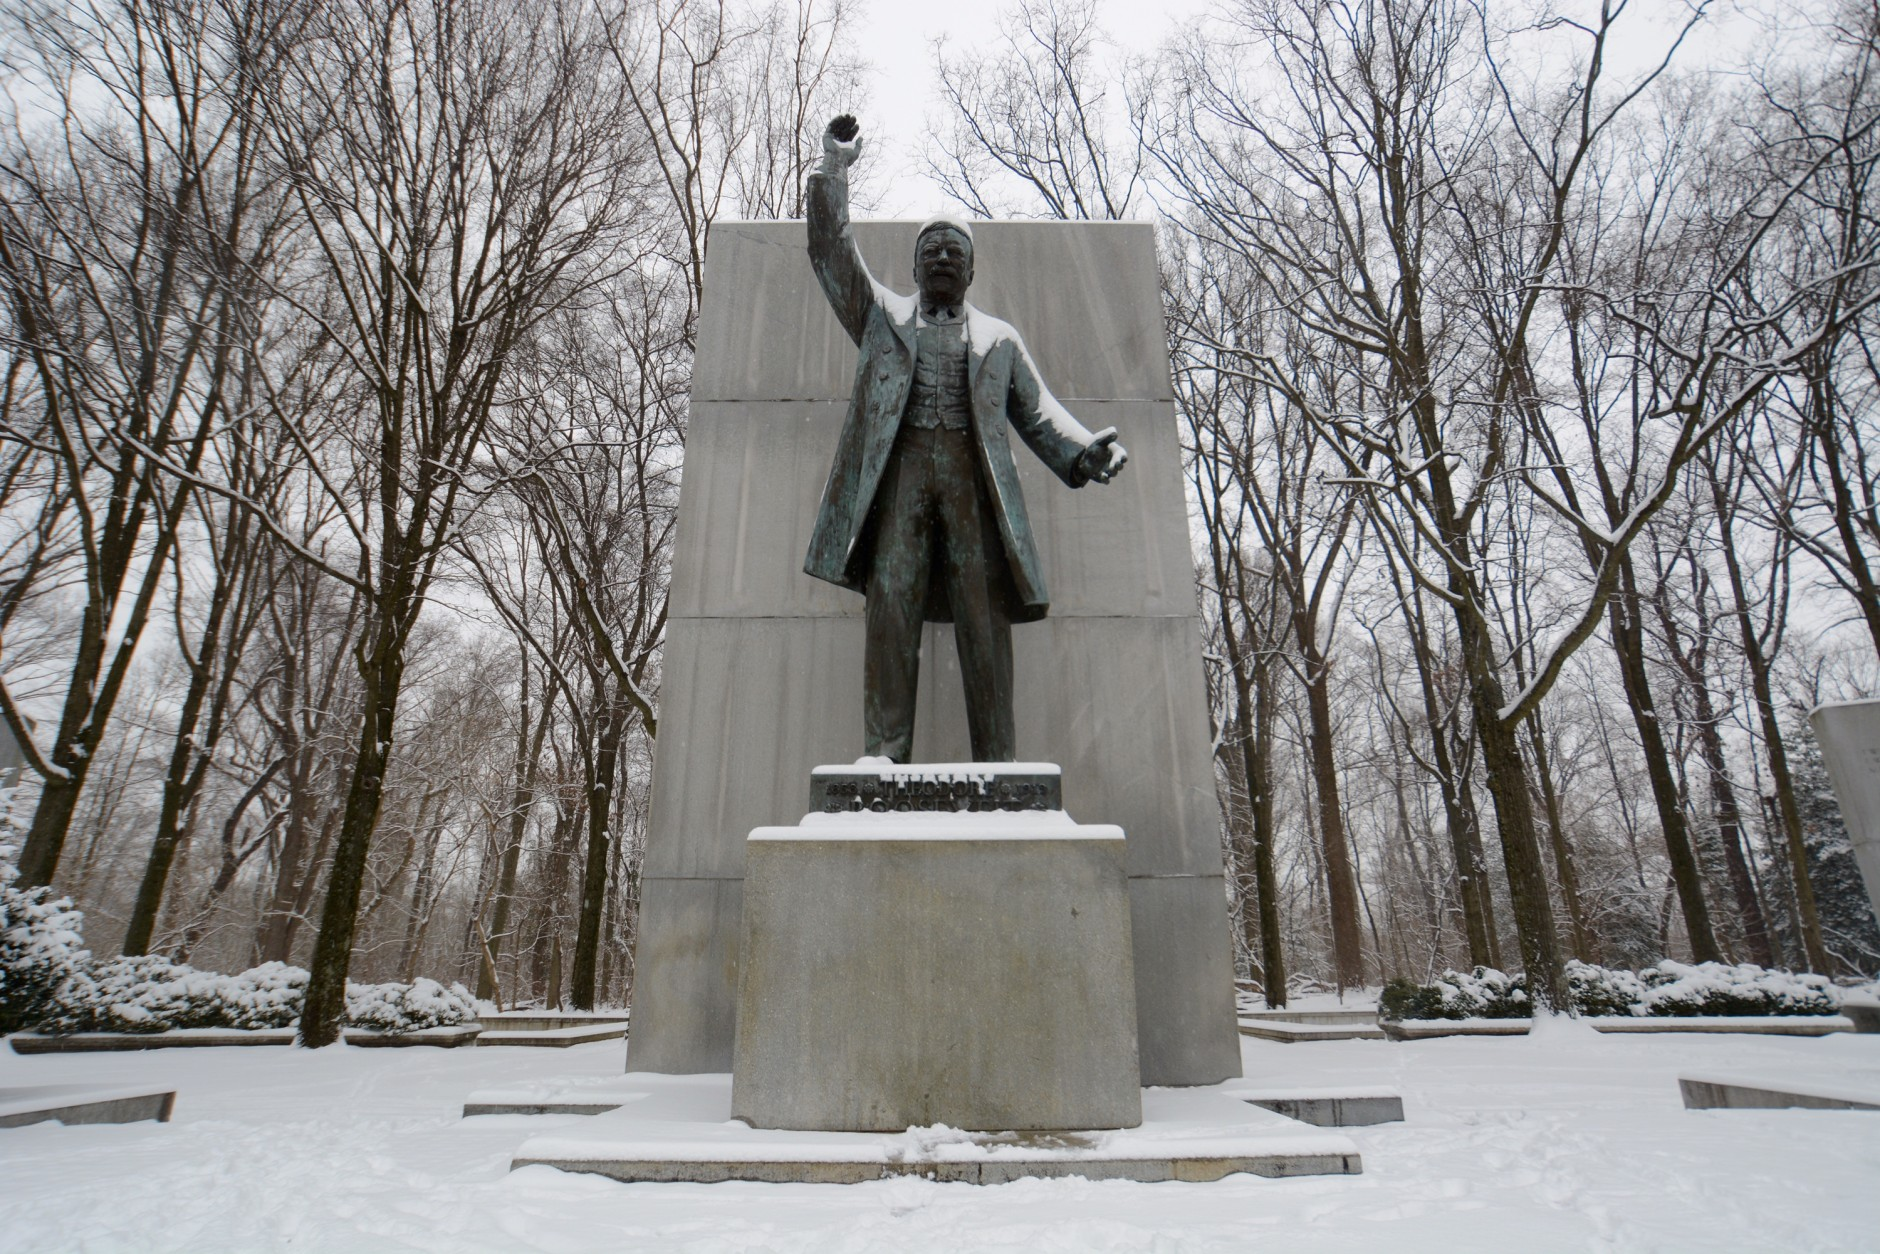 As the bike ride begins, snow starts to collect on the Theodore Roosevelt statue at the Theodore Roosevelt Island National Memorial in D.C. on Monday, Feb. 15, 2016. (WTOP/Dave Dildine)